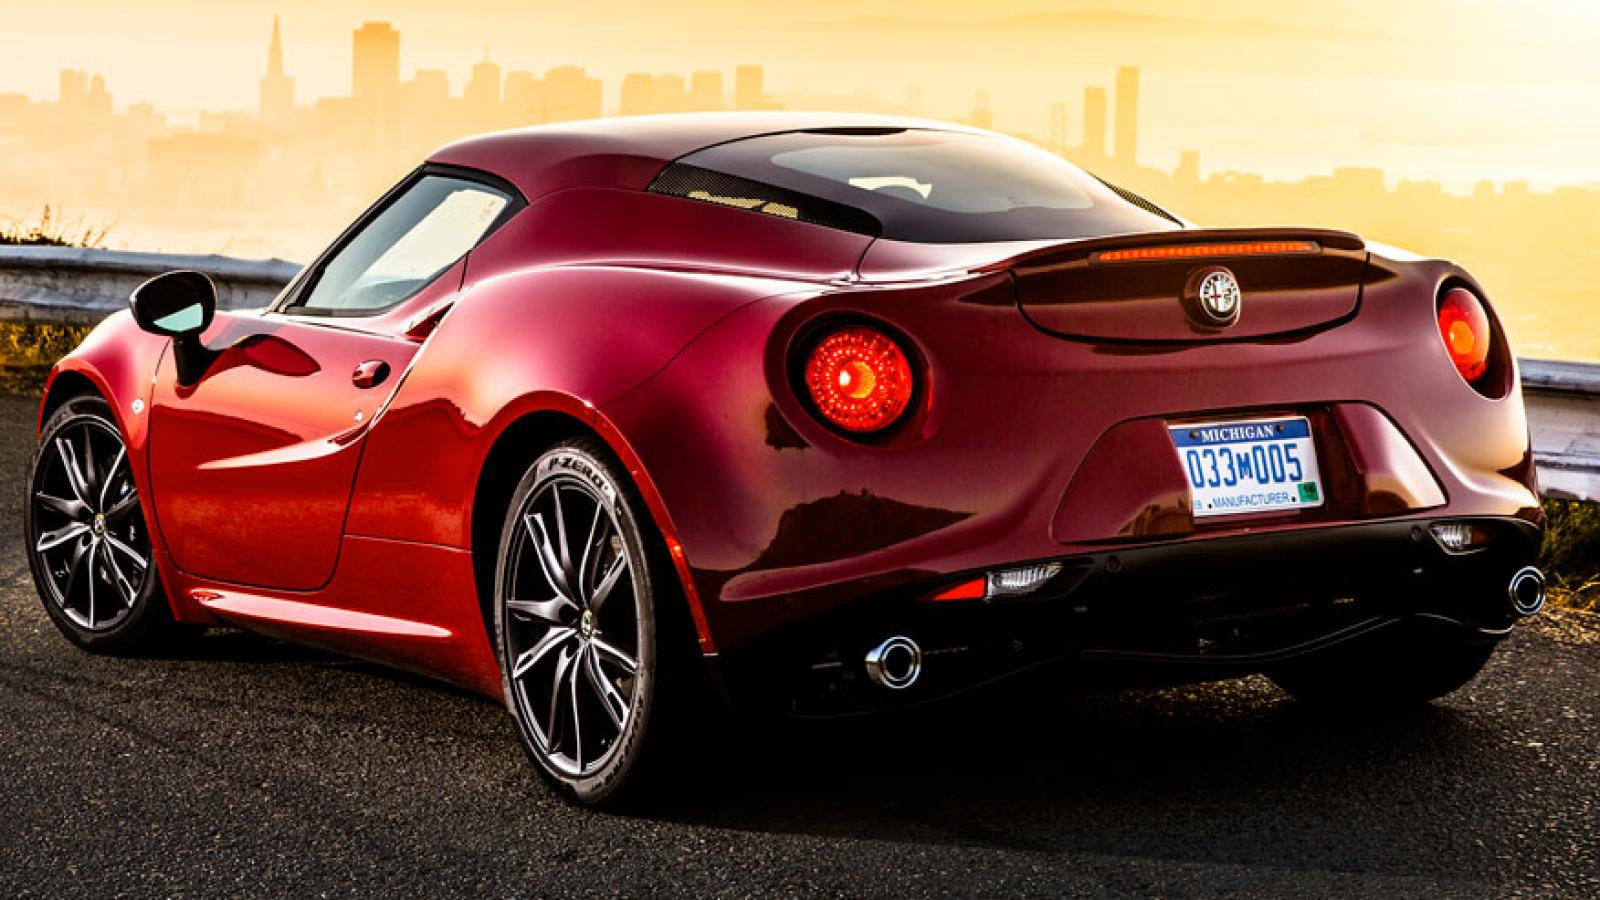 2015 alfa romeo 4c information and photos zombiedrive. Black Bedroom Furniture Sets. Home Design Ideas